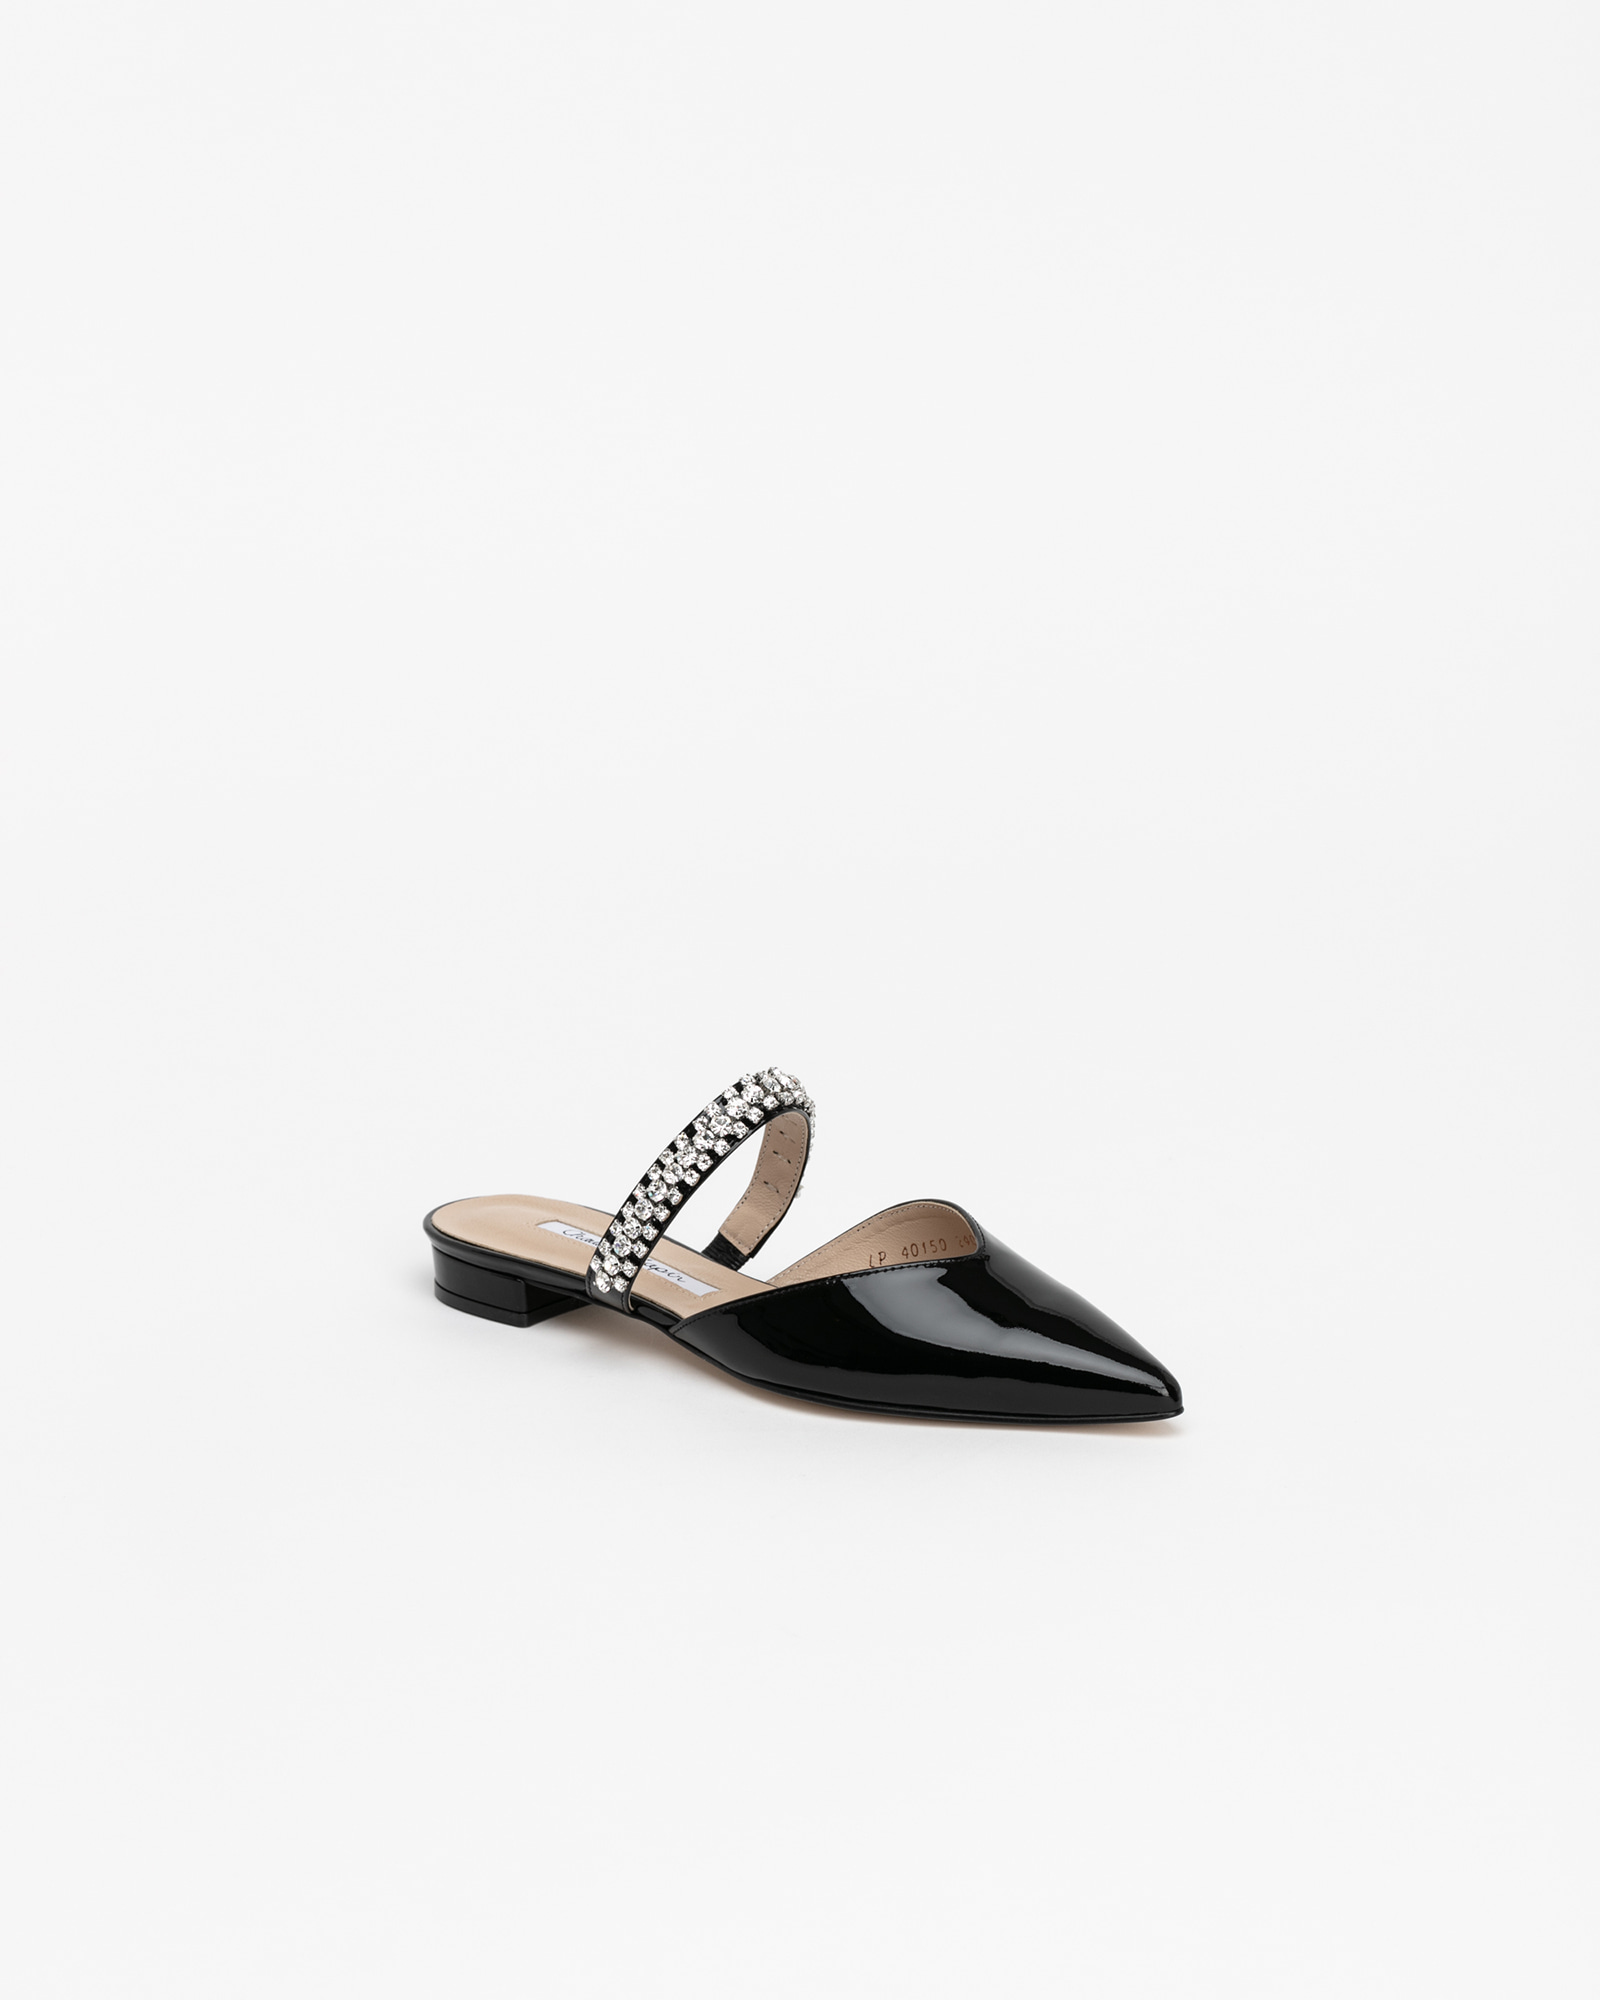 Patio Jeweled Slides in Black Patent